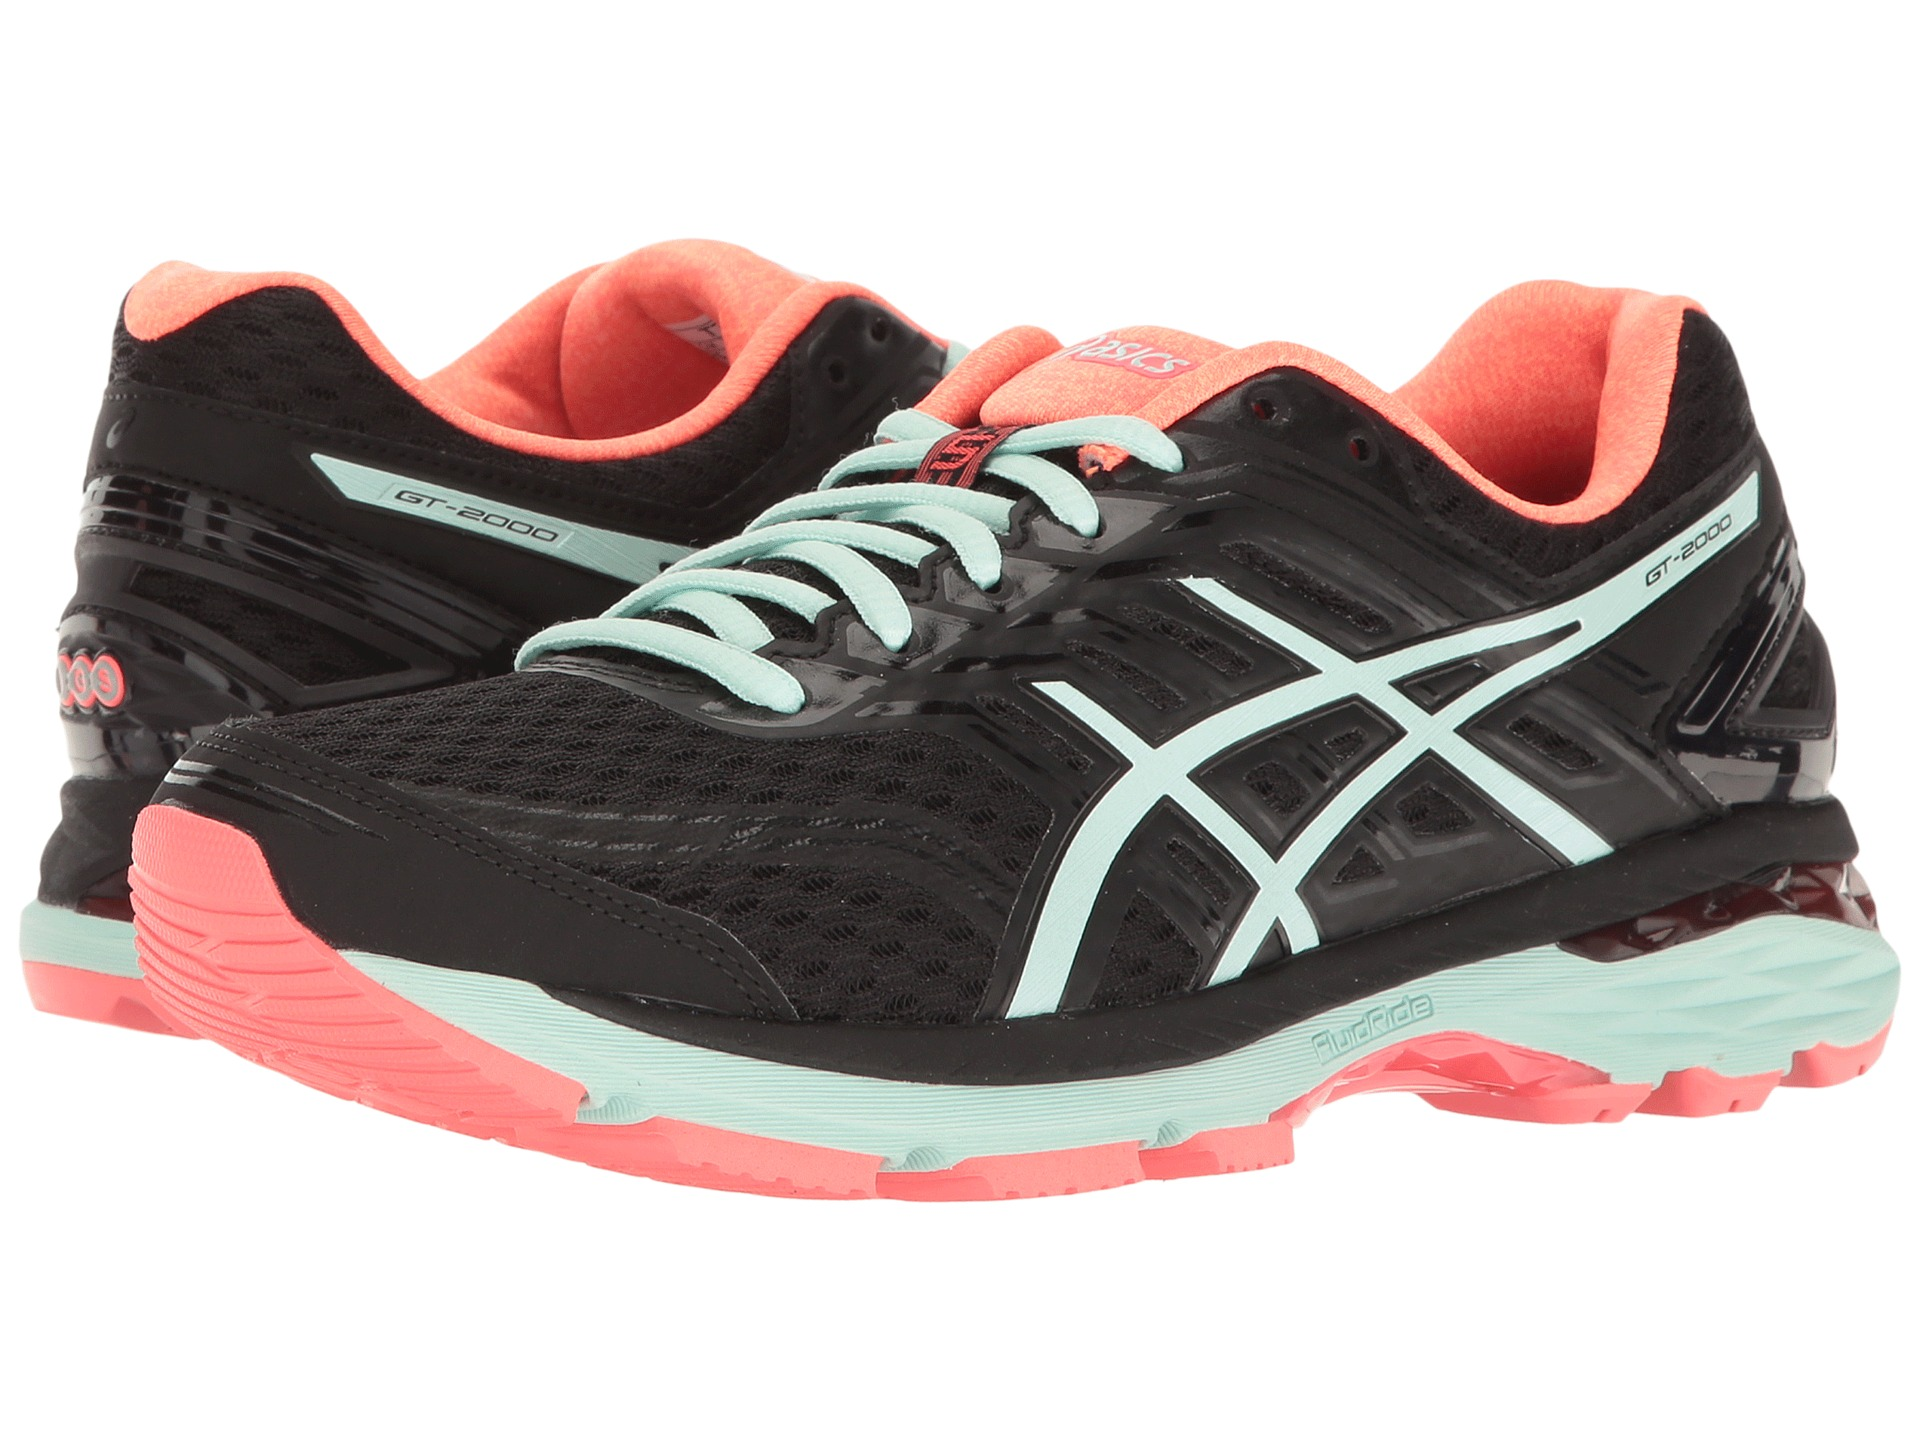 Zappos Asics Womens Running Shoes